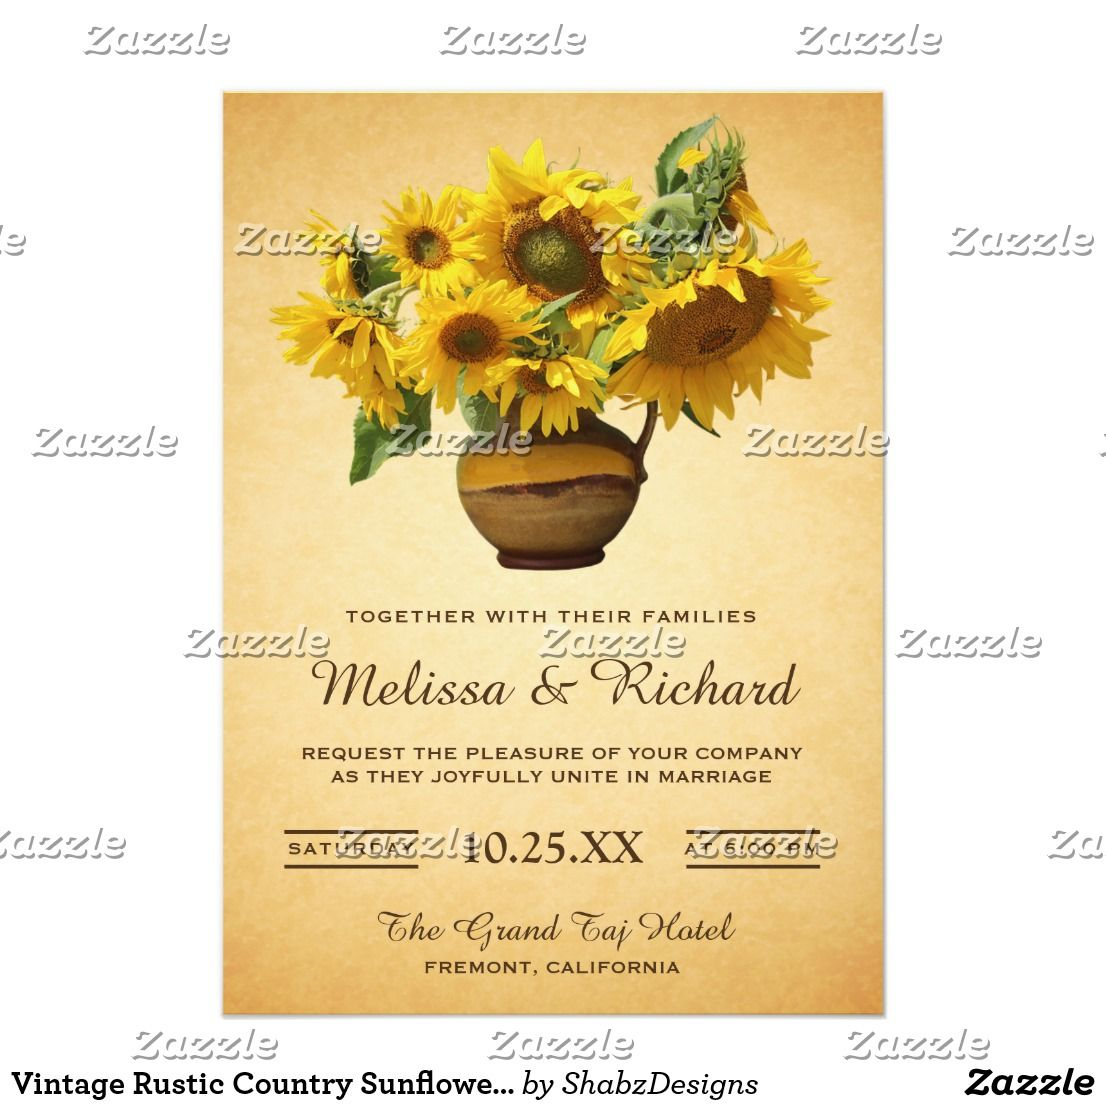 Vintage Rustic Country Sunflower Vase Wedding Card Wedding Card